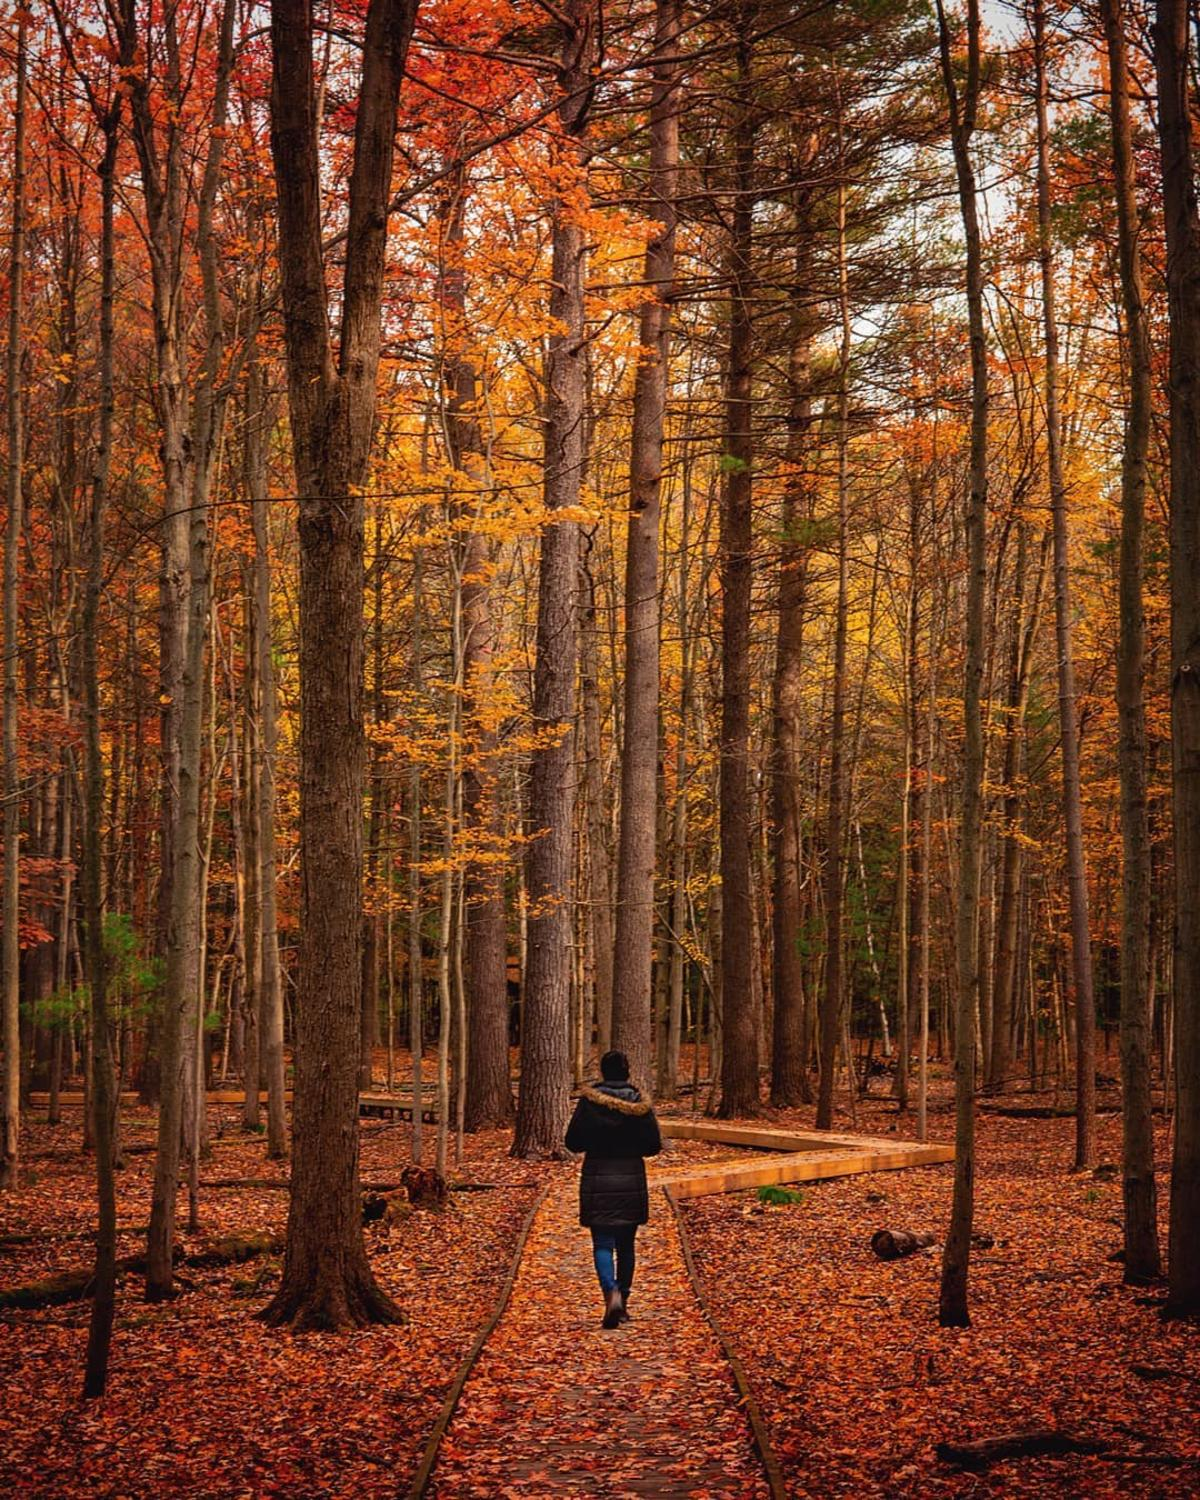 Woman walking on a fall leaf-covered trail at Whiting Forest of Dow Gardens in Midland